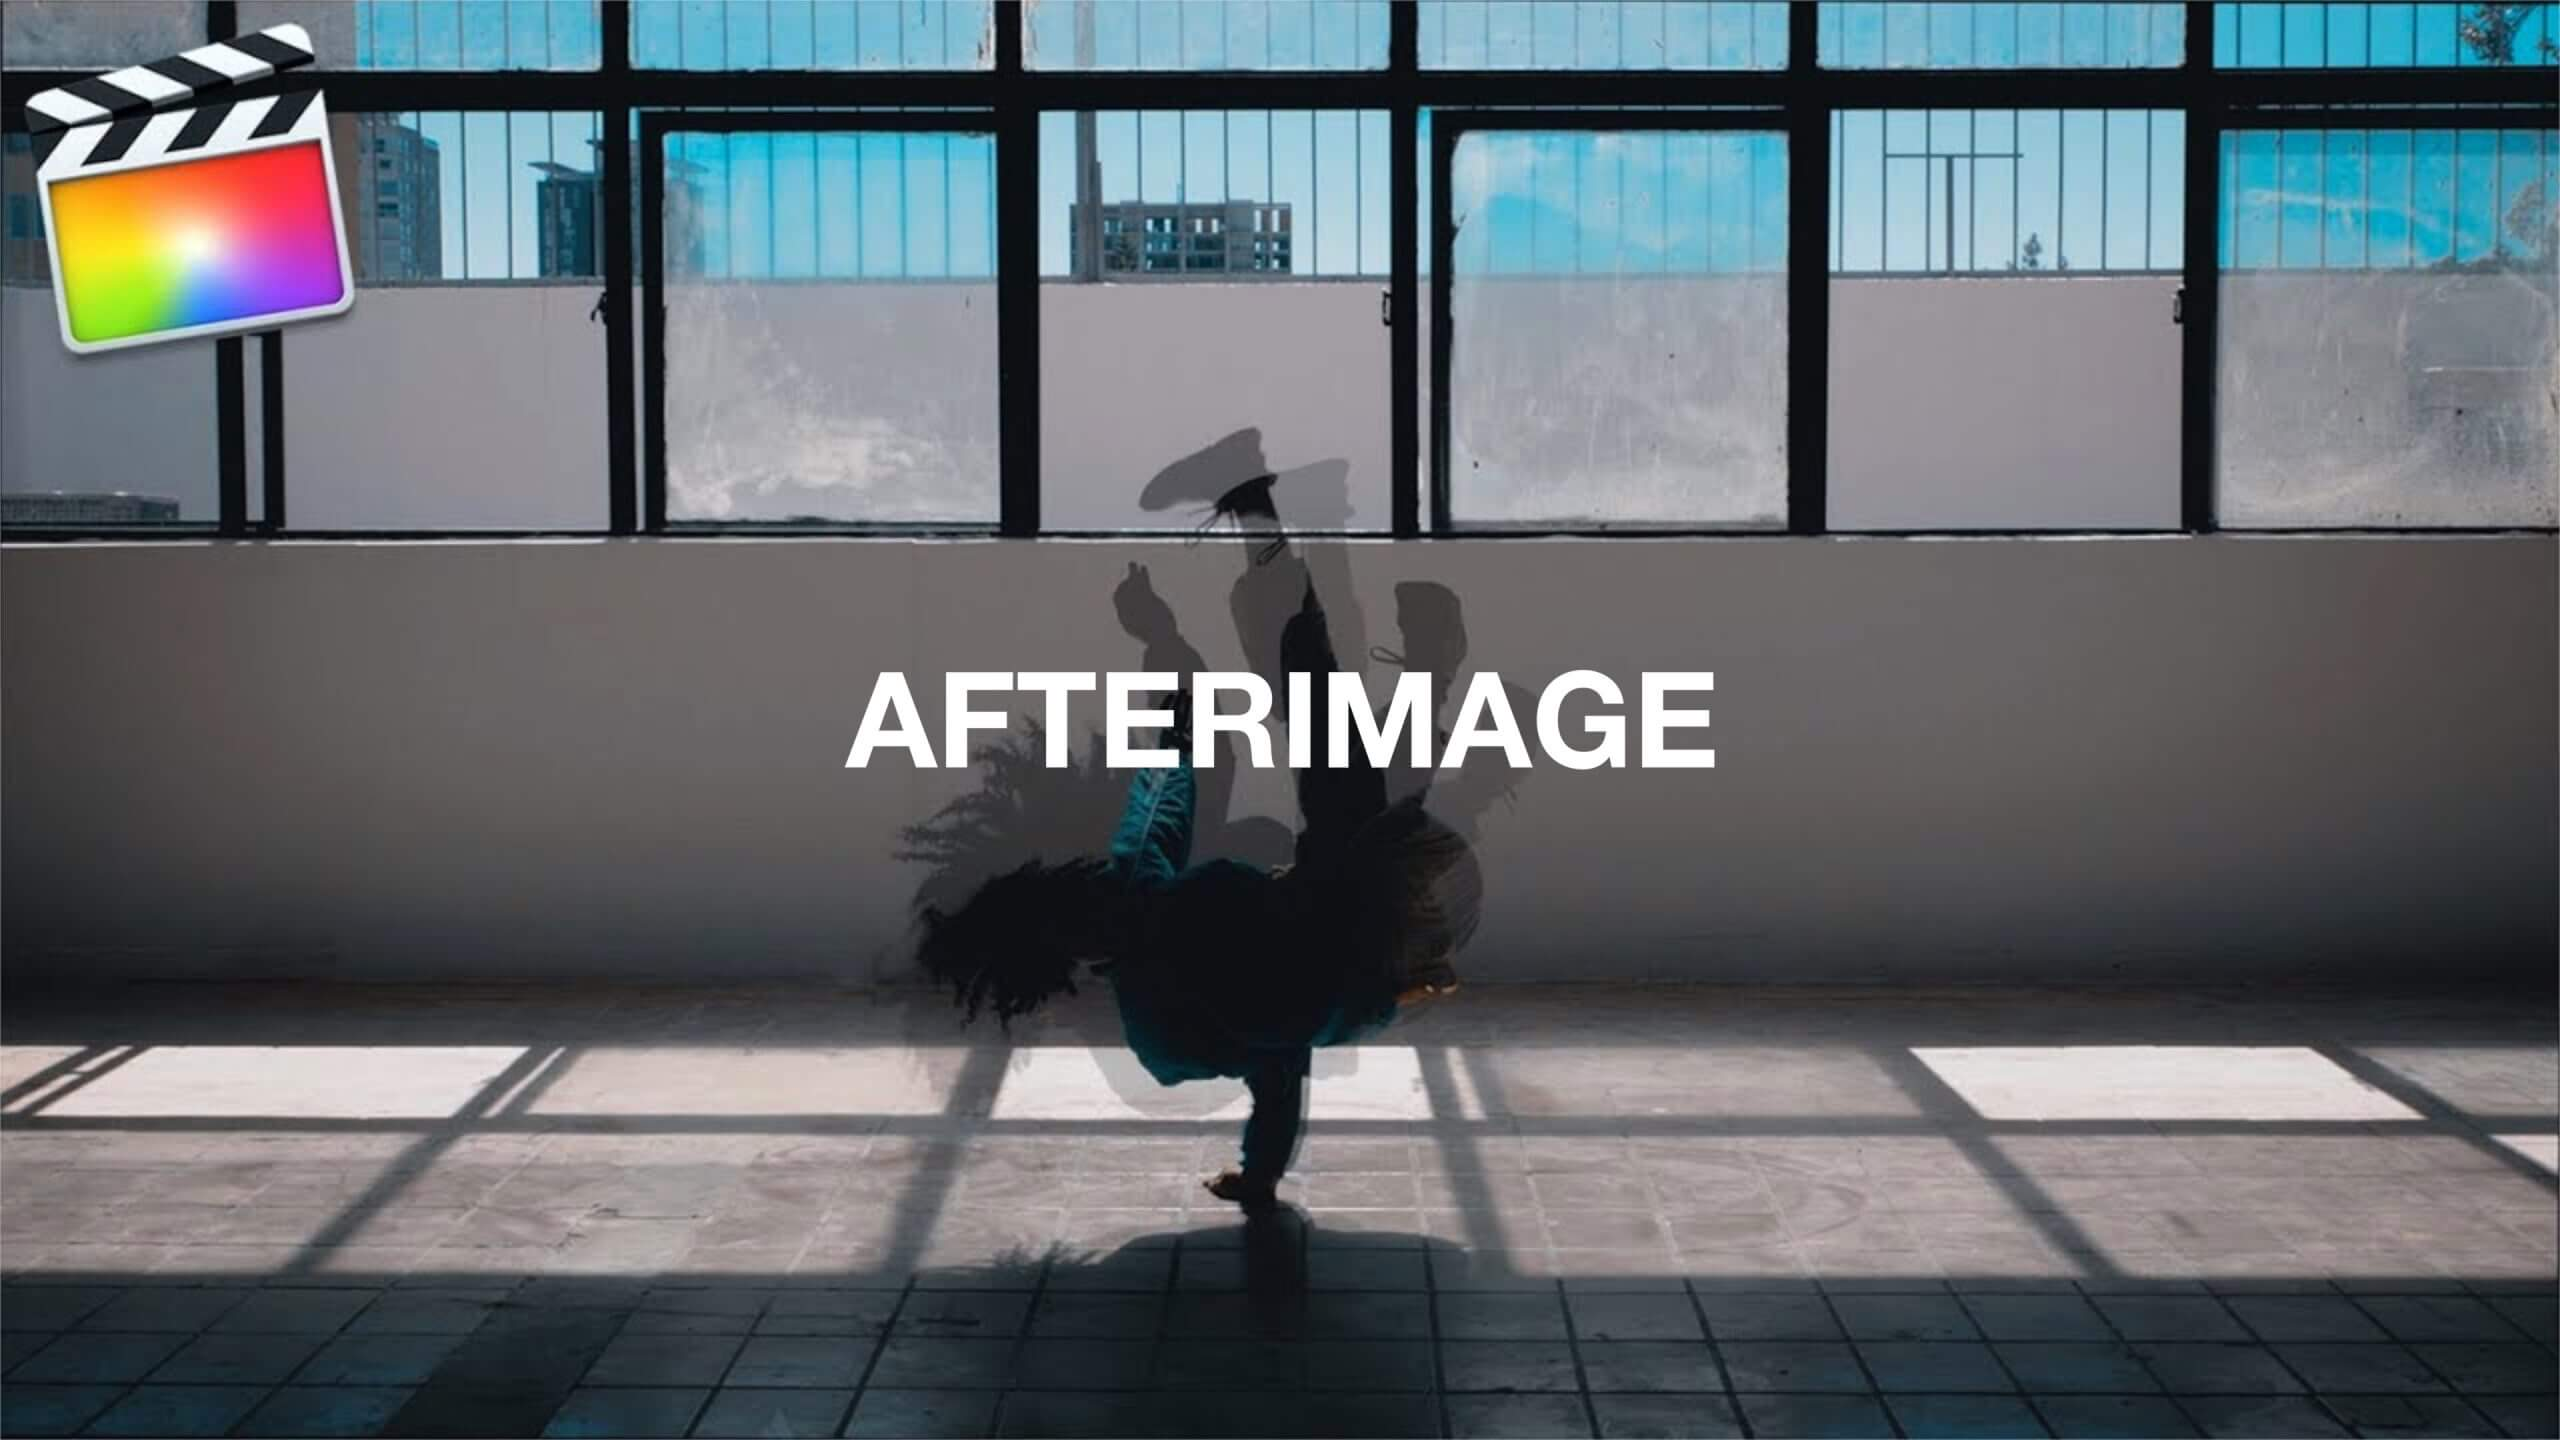 Final Cut Pro X 残像を残す「Afterimage Effect」の方法